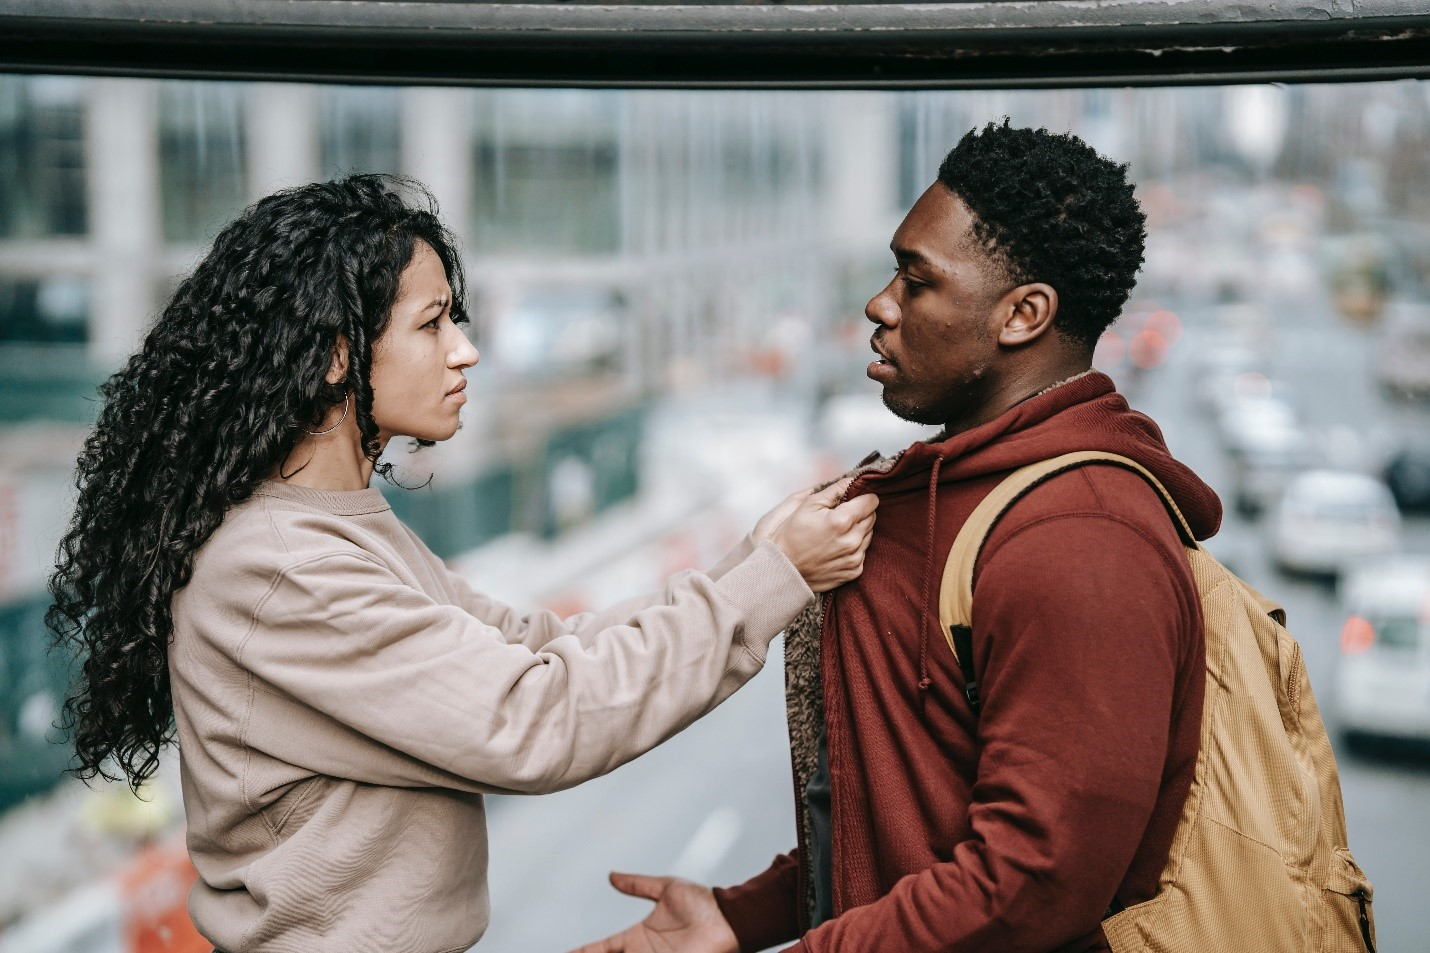 A couple having a conflict on the street